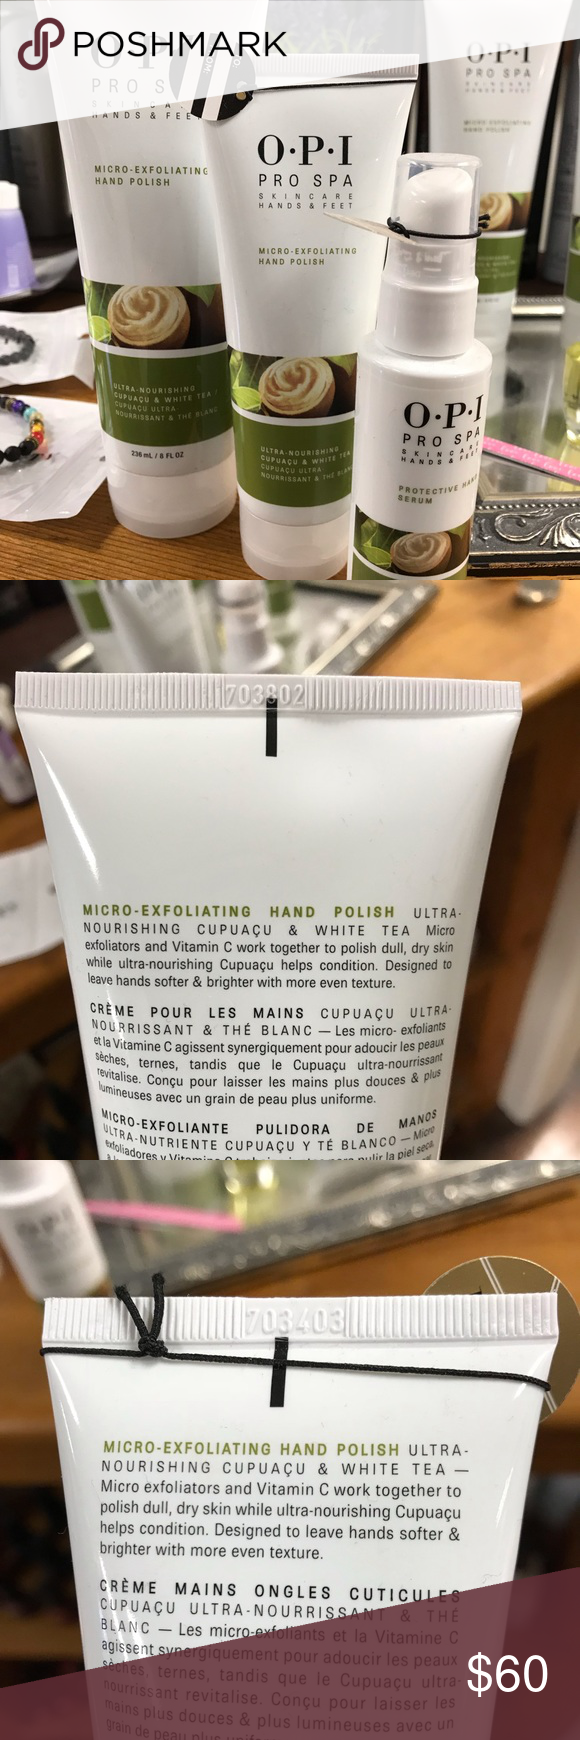 O P I Brand Pro Spa Line Skincare Hands And Feet O P I Pro Spa Skincare Line For Hands And Feet Micro Exfoliating Hand P Skin Care Spa How To Apply Skin Care